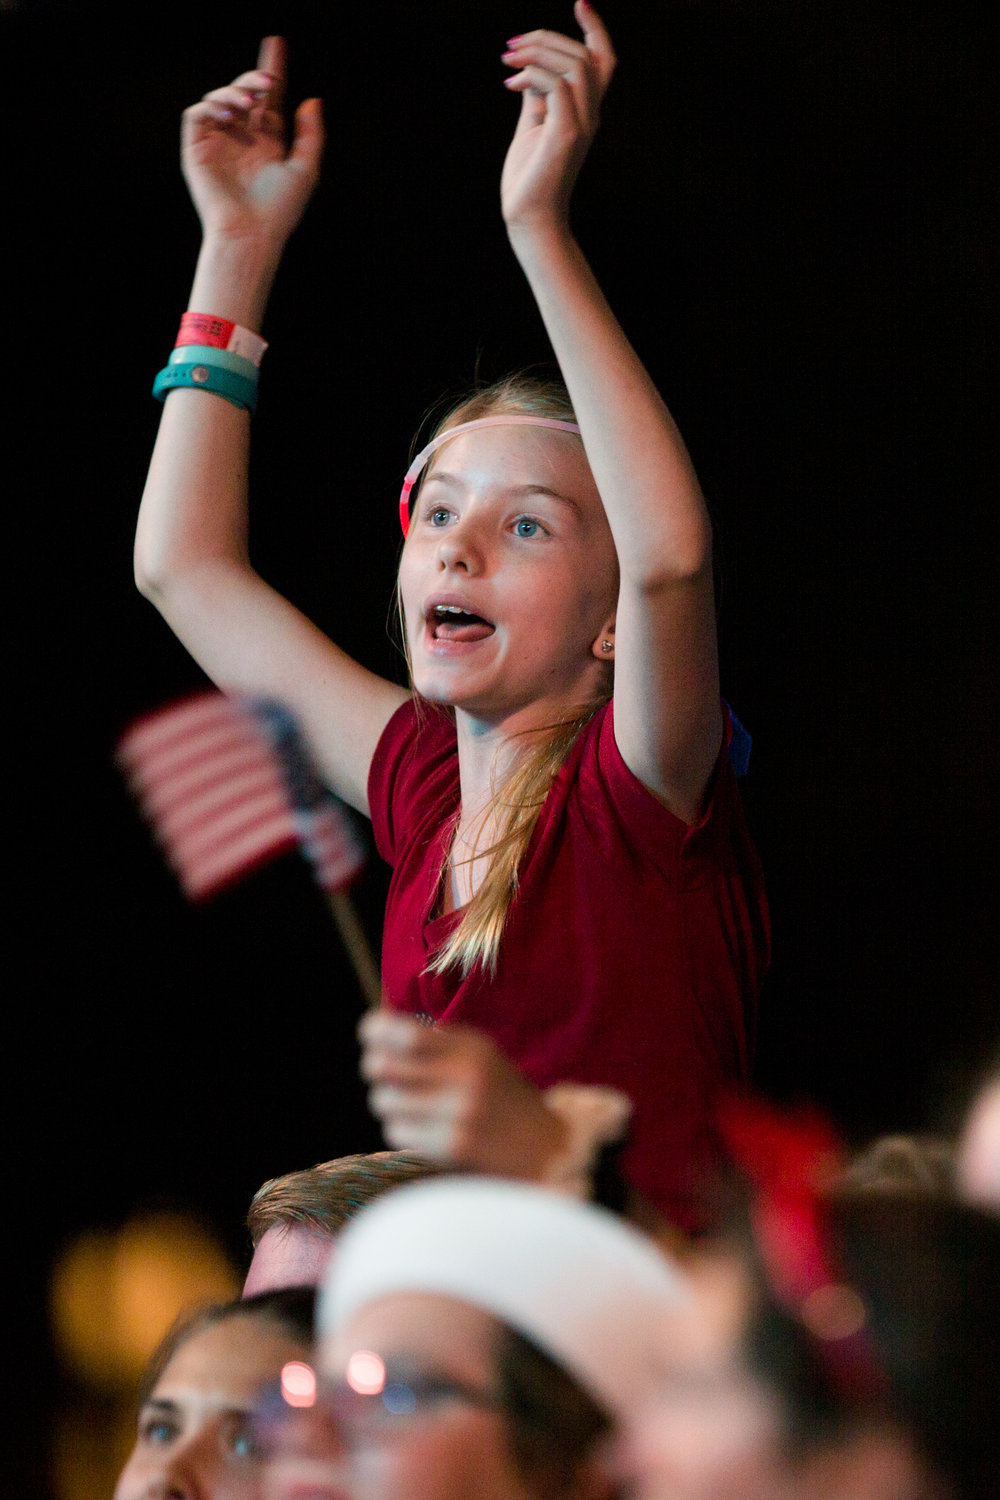 Boston, MA - 7/4/17 - A fan cheers during the Fourth of July Pops celebration on the Esplanade on Tuesday, July 4, 2017. (Nicholas Pfosi for The Boston Globe) Topic: 05IndepenceDaypic